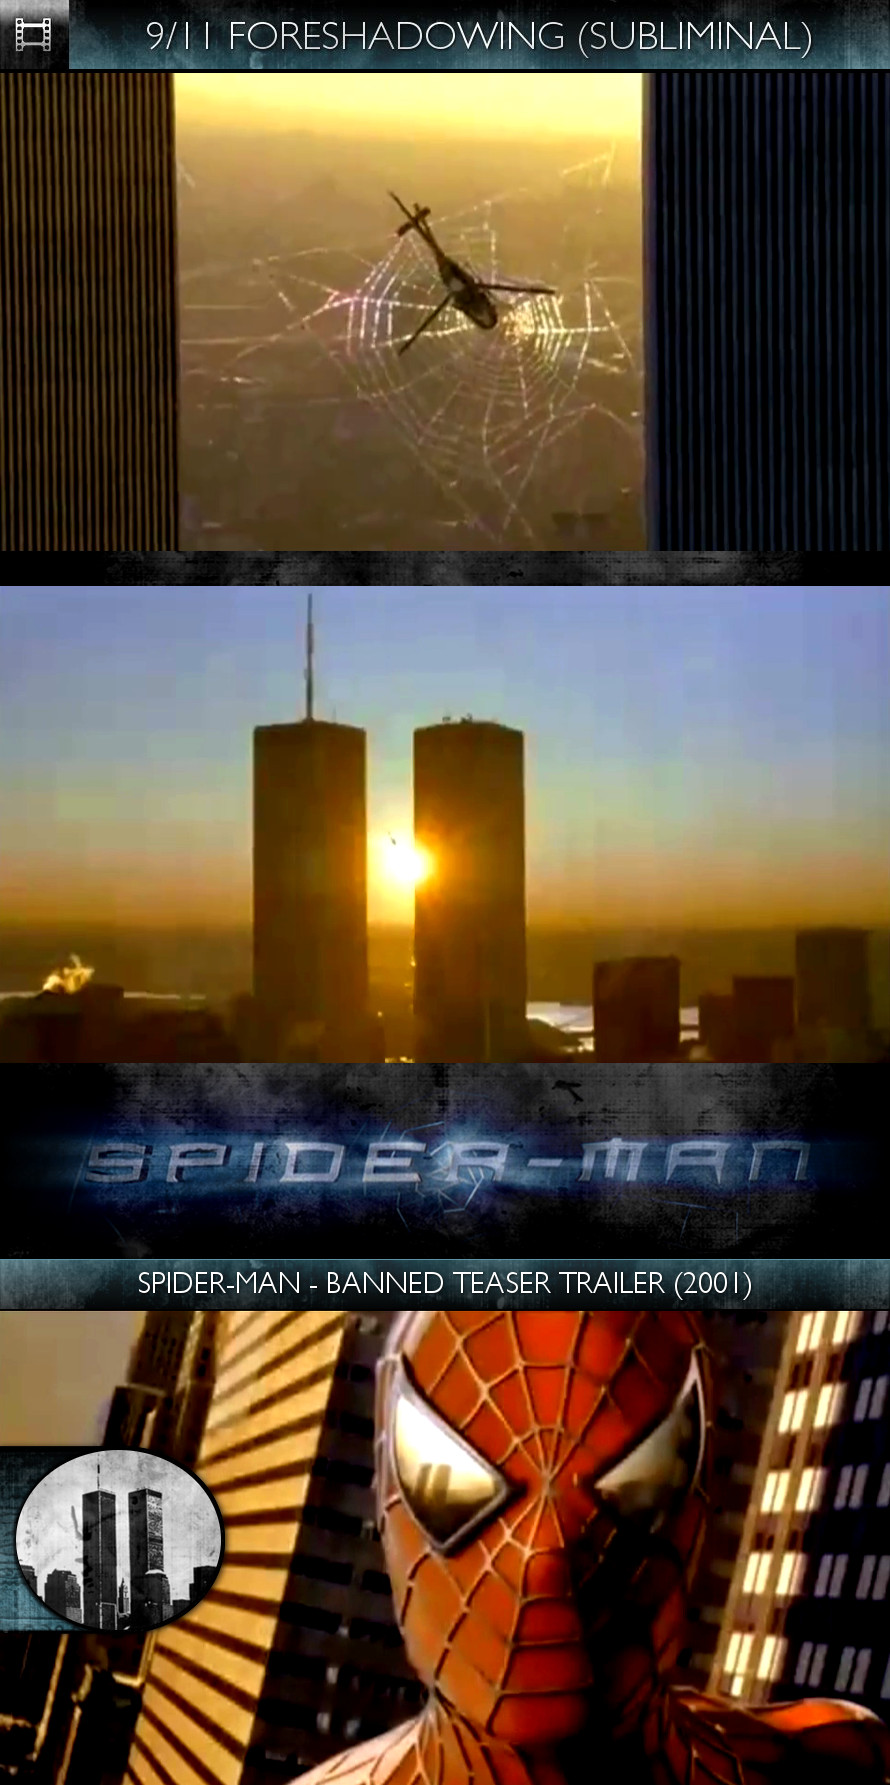 Spider-Man (2002) - Banned Teaser Trailer (2001) - 9/11 Foreshadowing